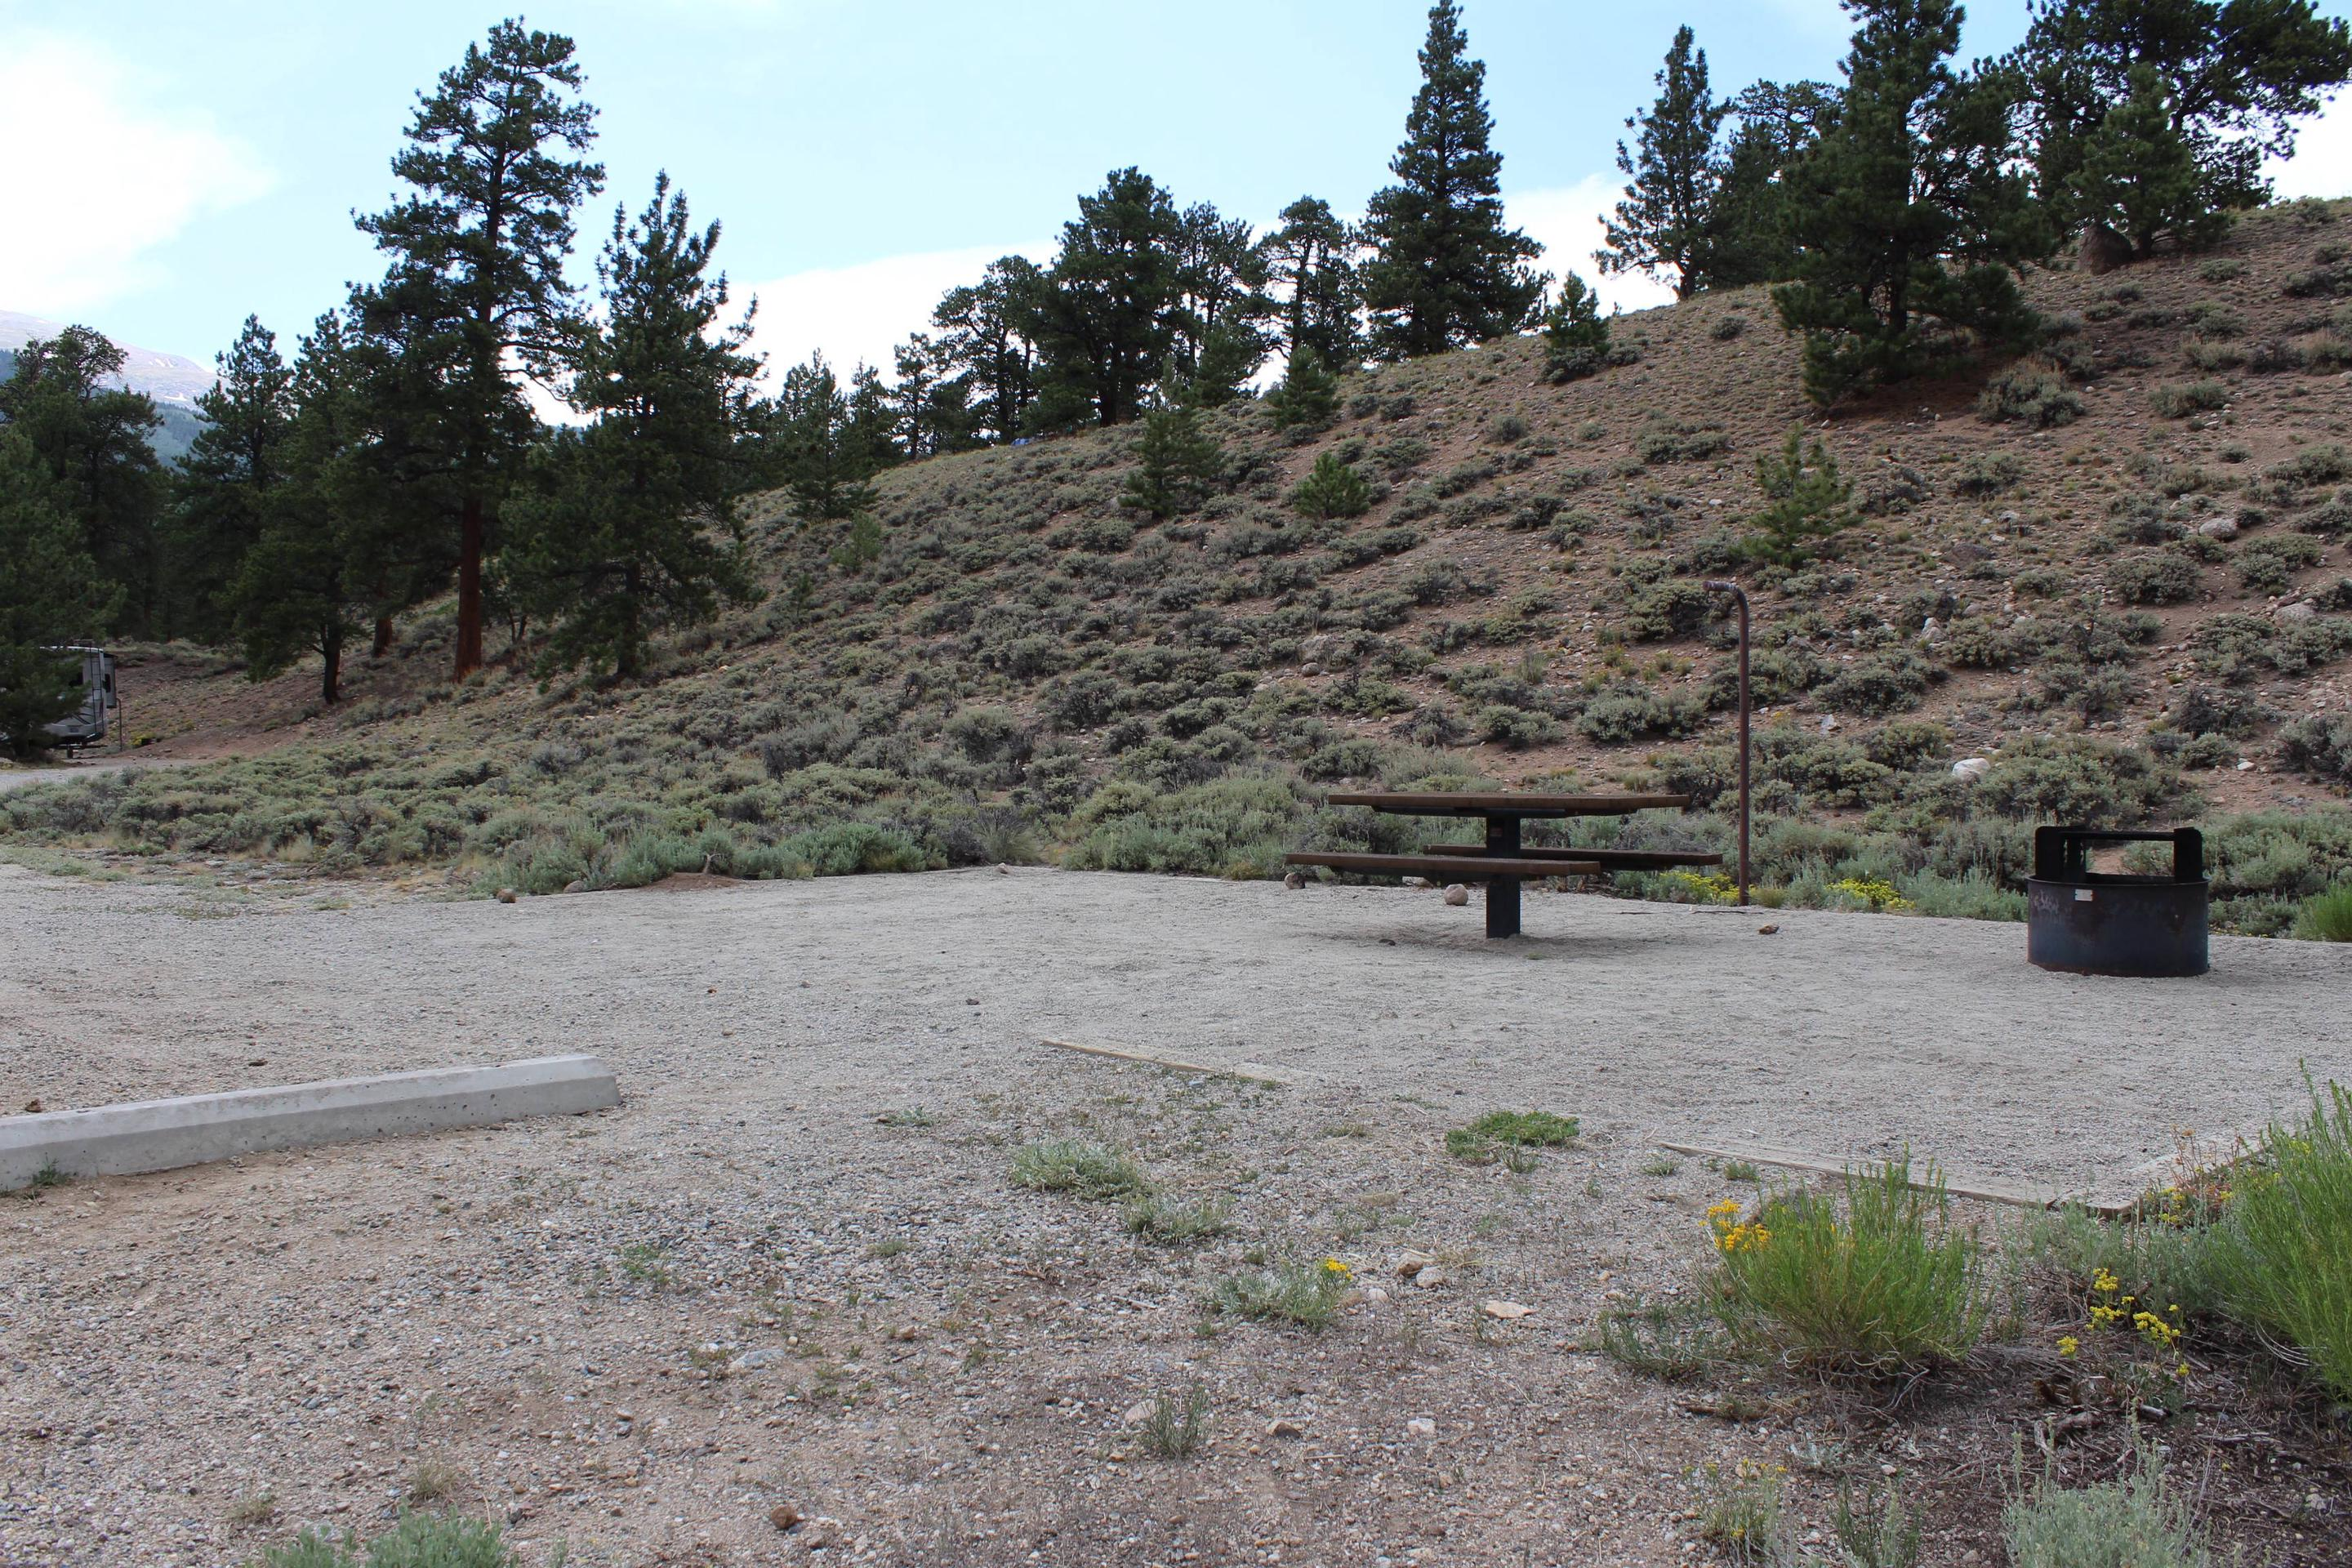 White Star Campground, site 21 picnic table and fire ring